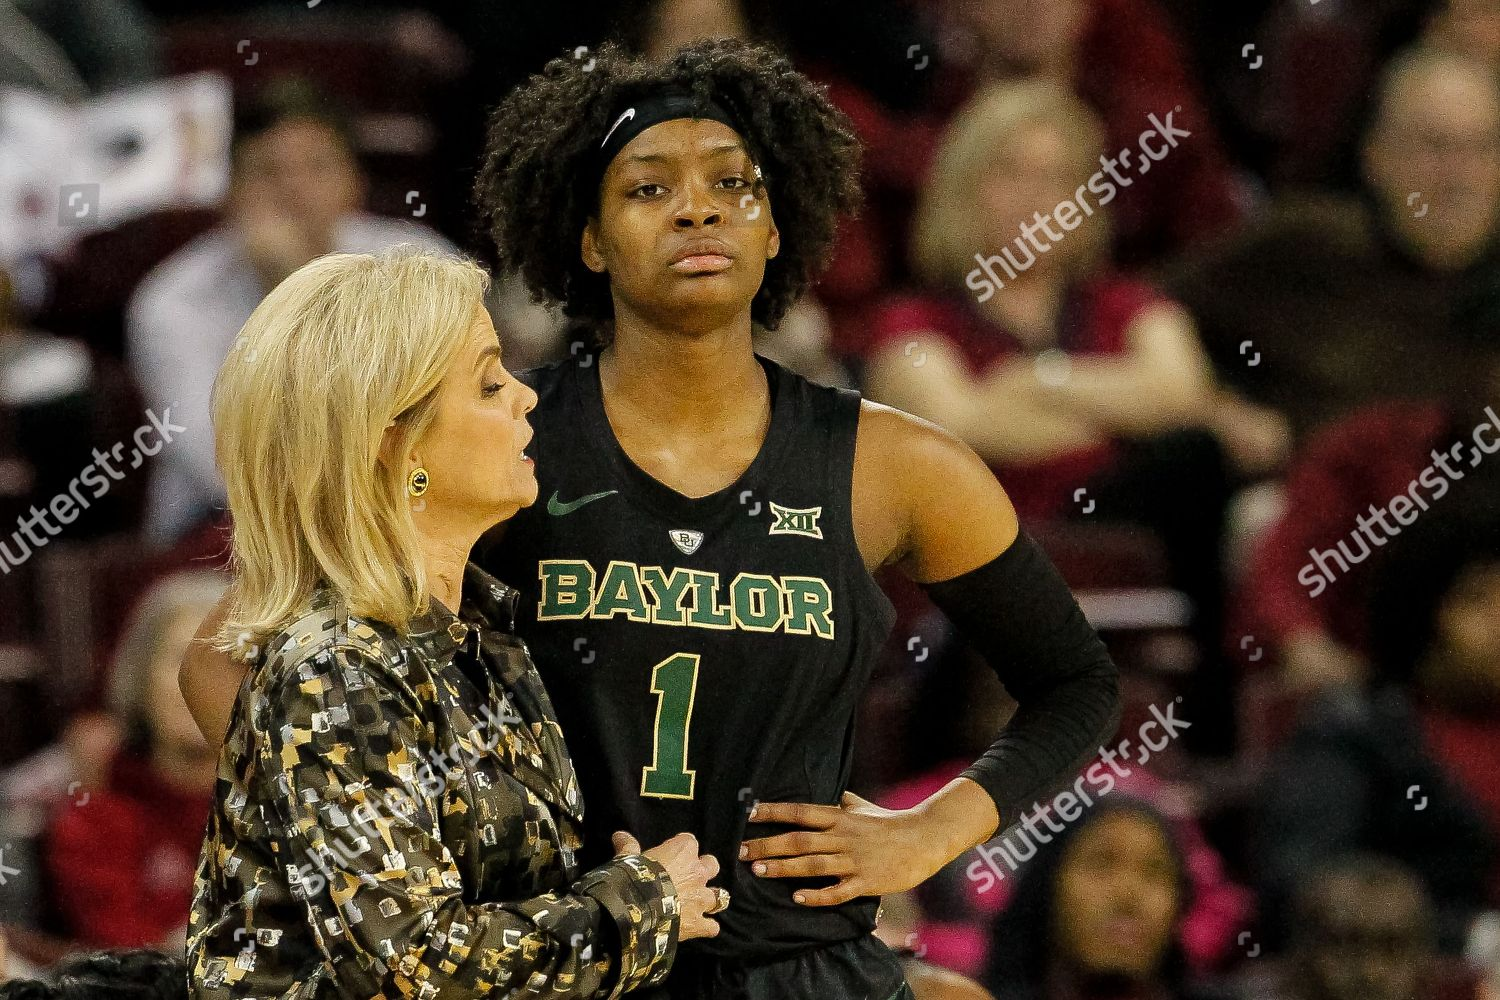 dating coach kim mulkey instagram logo transparent